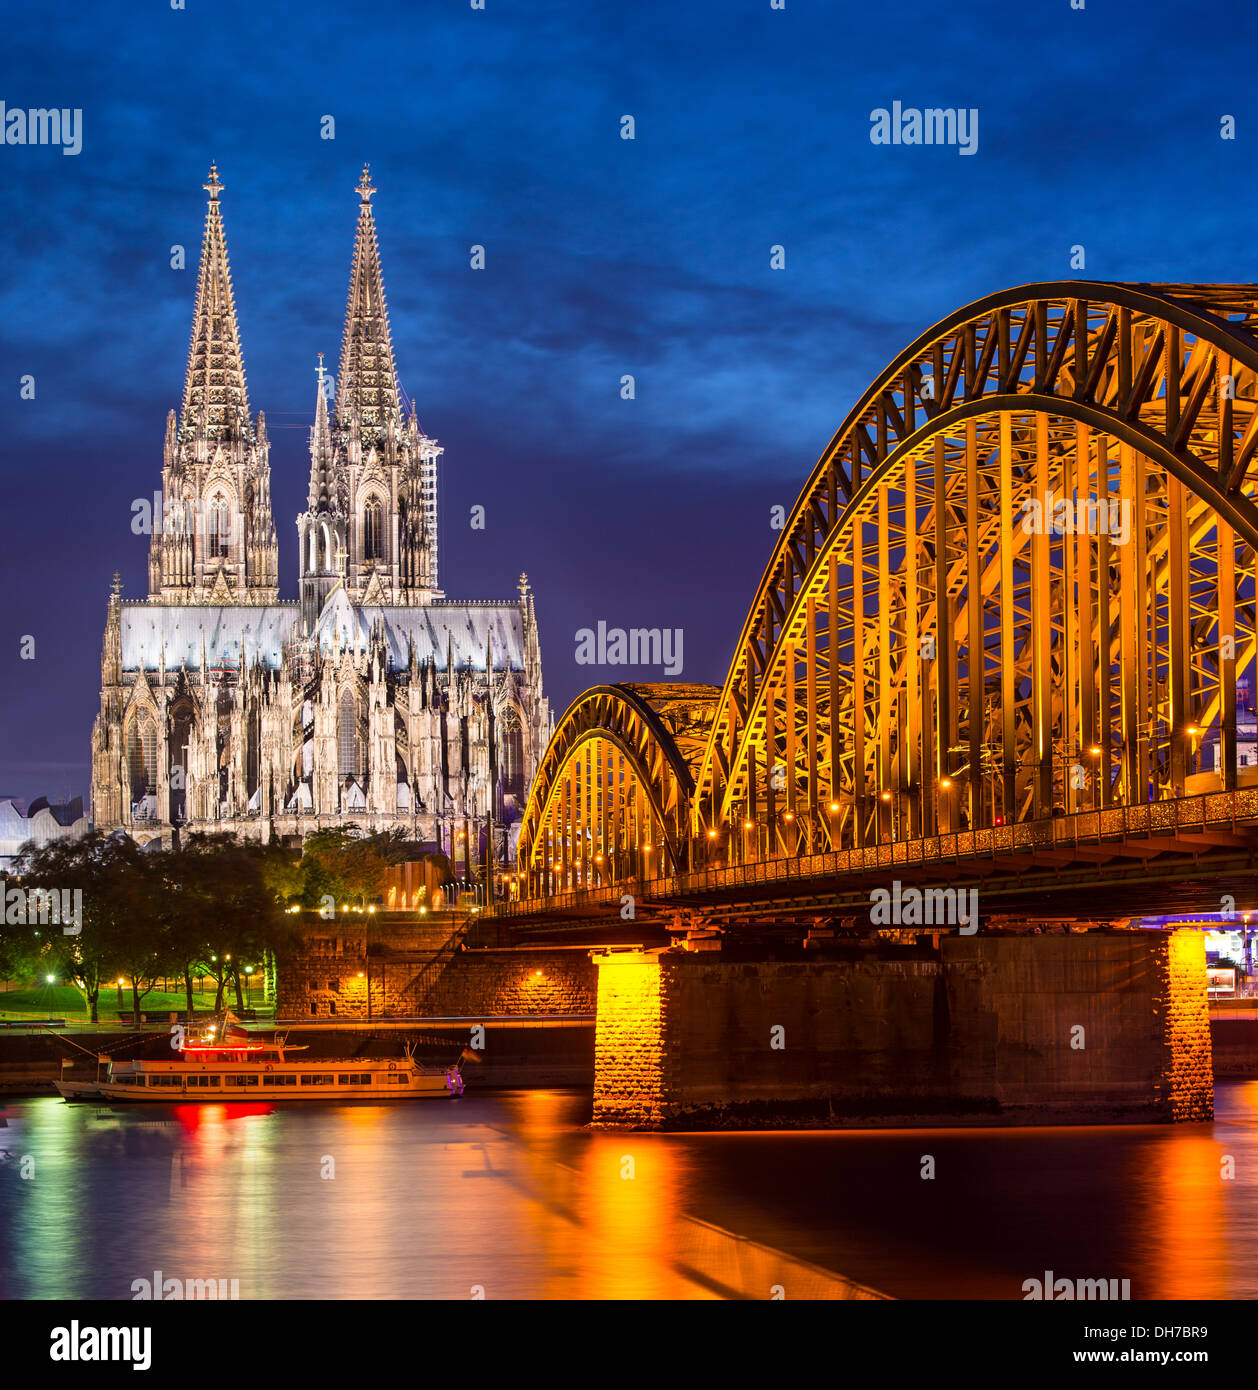 Cologne, Germany aerial view over the Rhine River. - Stock Image